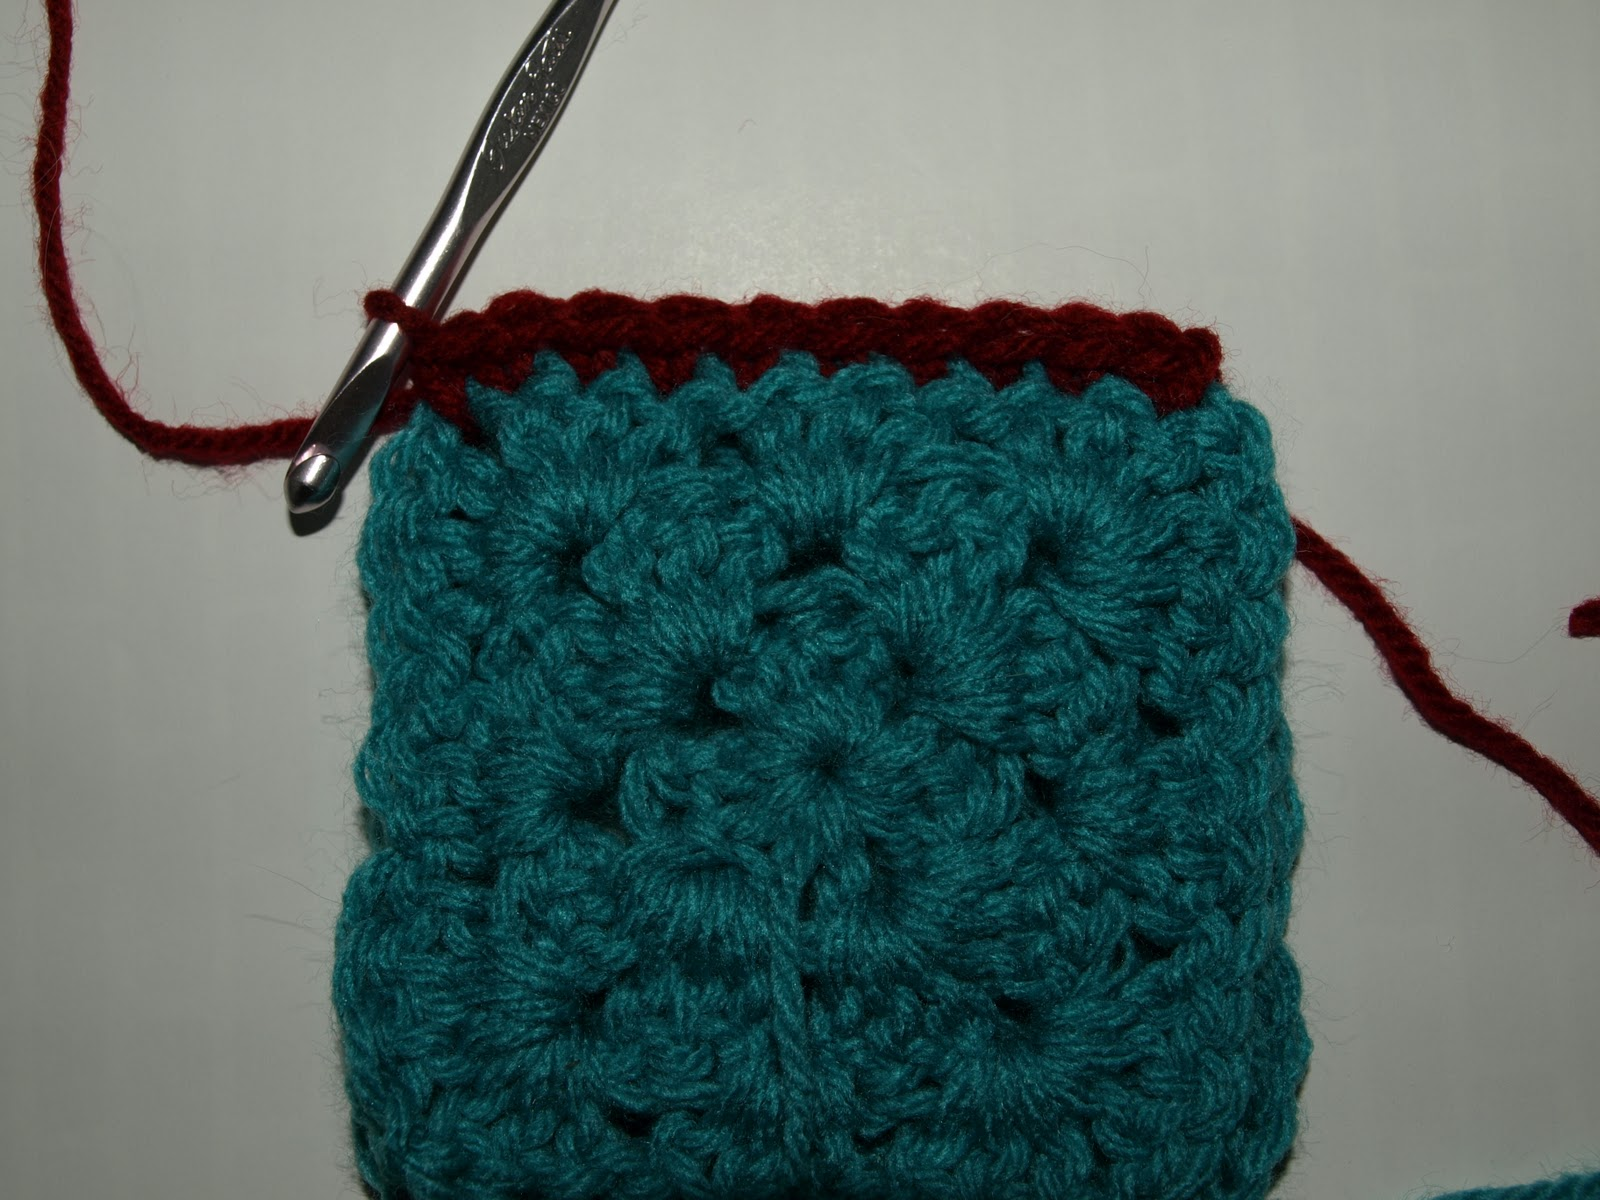 Crochet Join Stitch : CrochetByKarin: The Single Crochet Joining Stitch